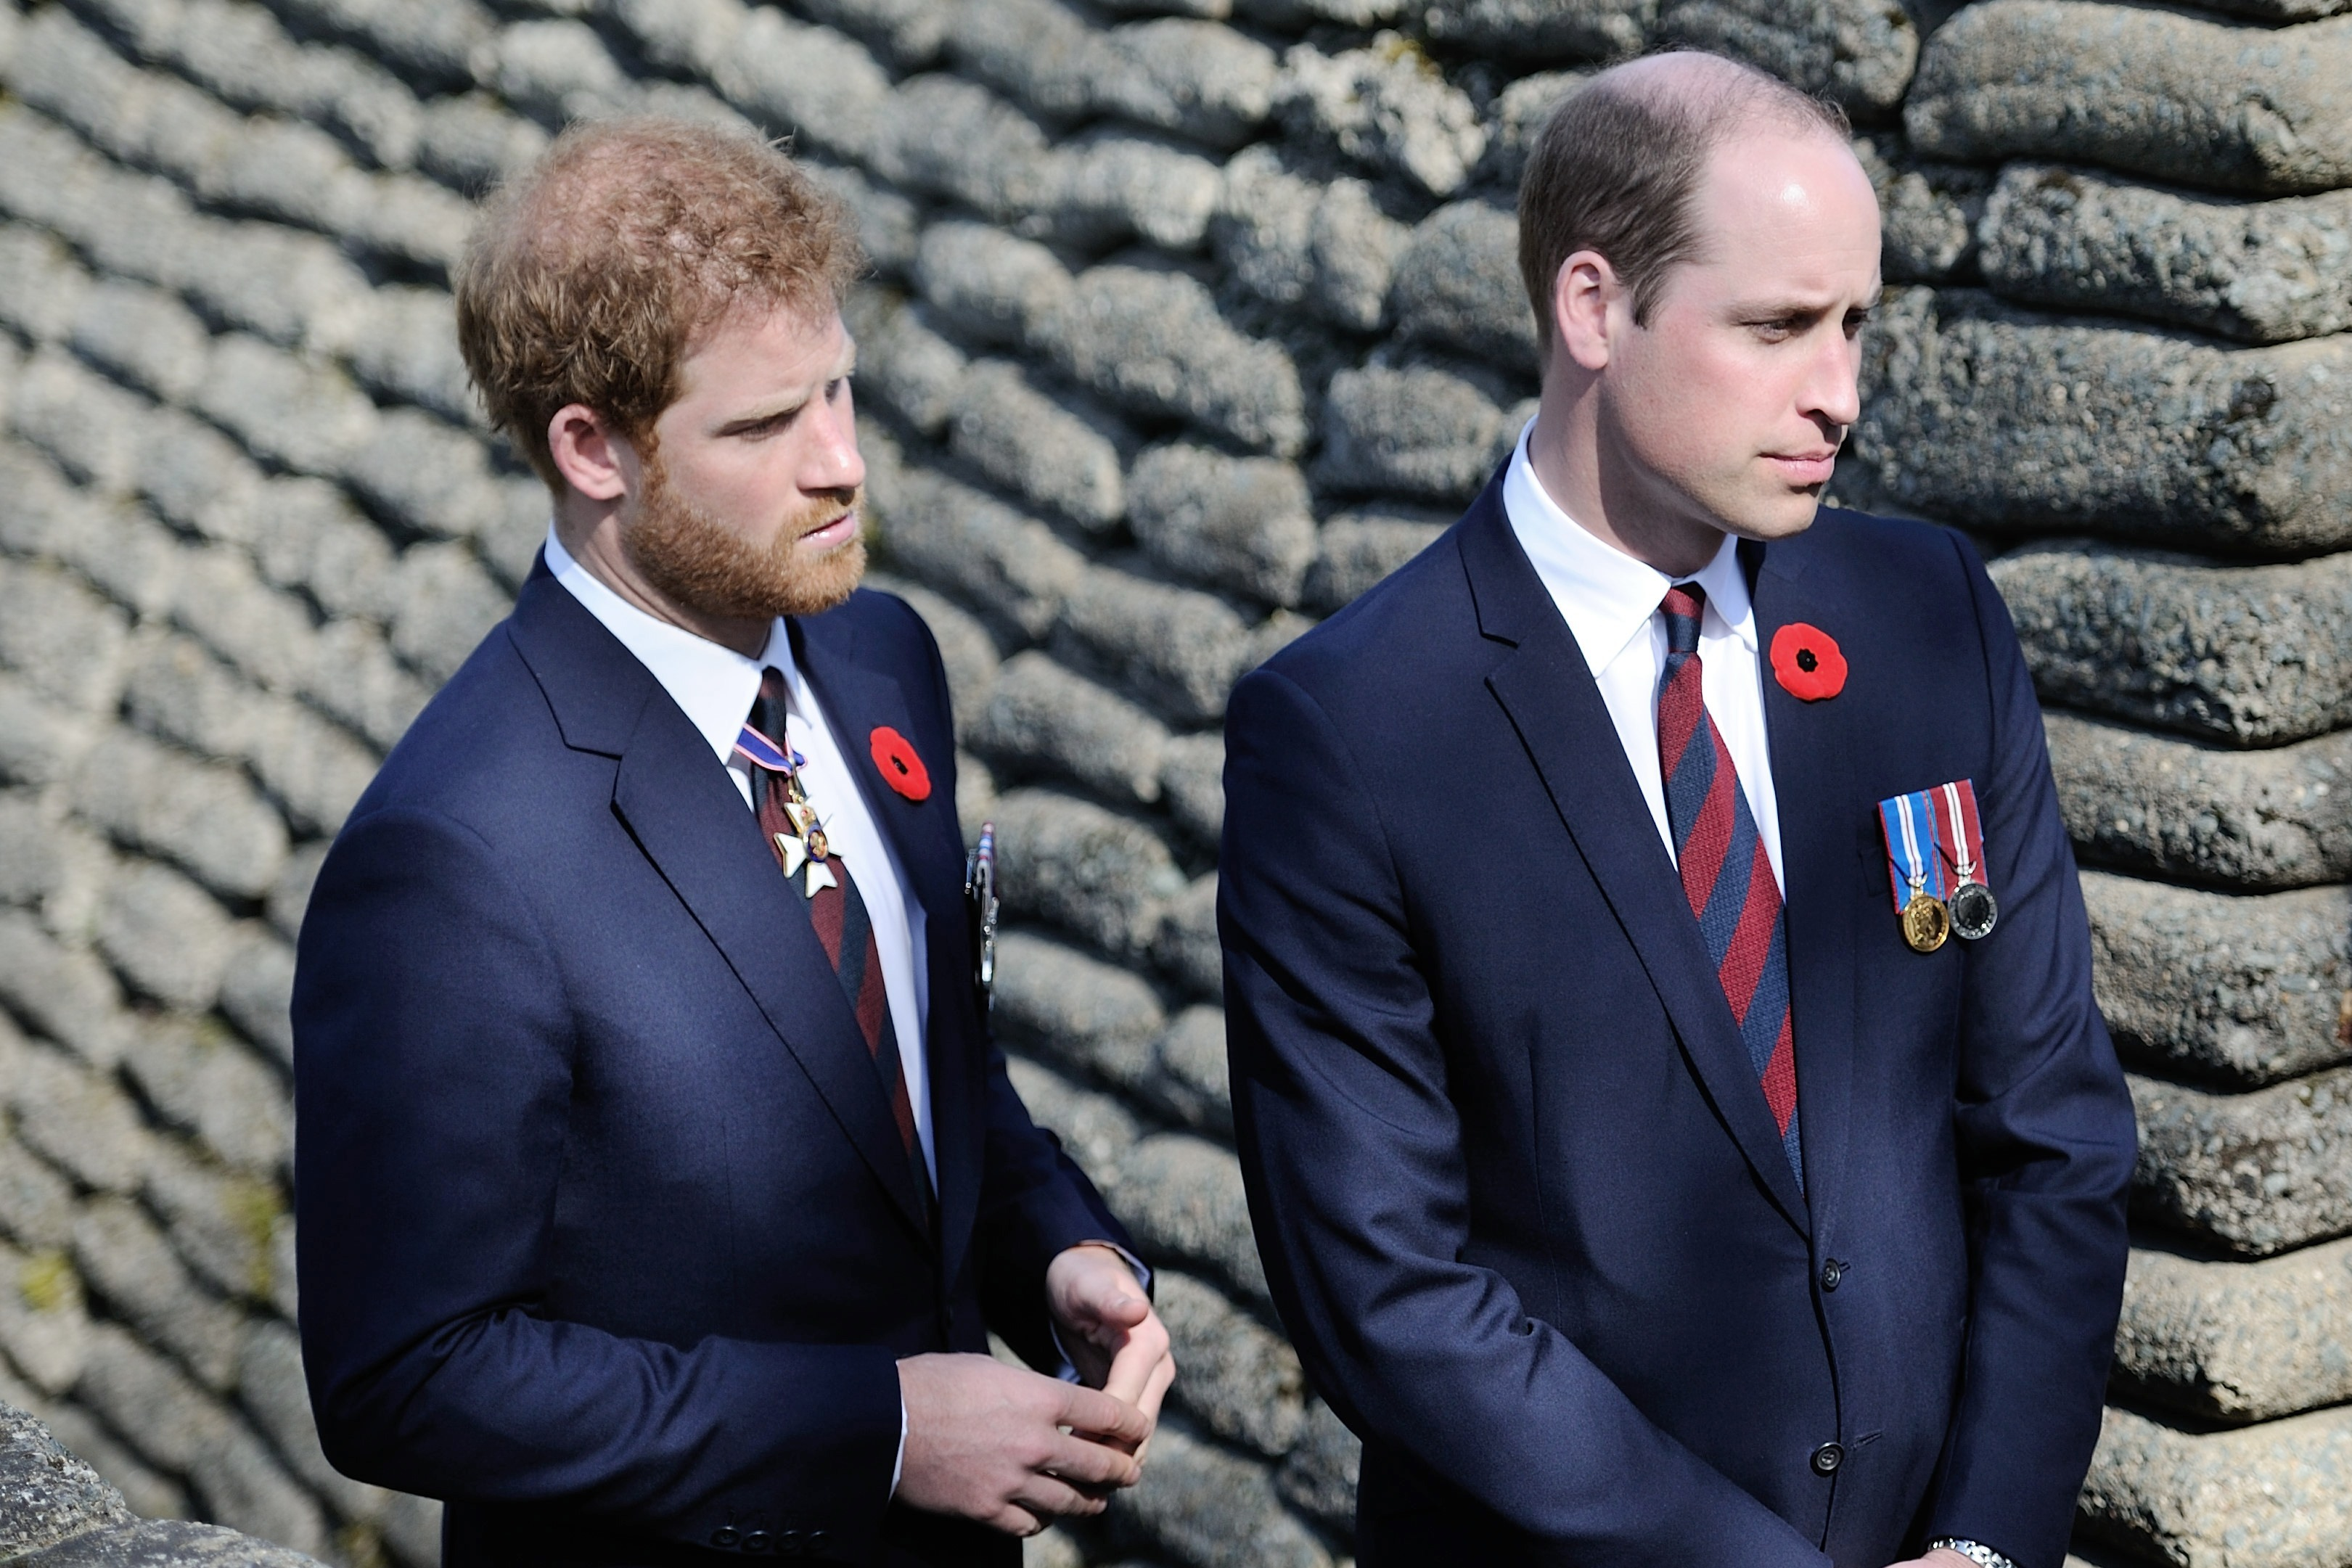 Princes William and Harry reveal how they learned of Diana's death